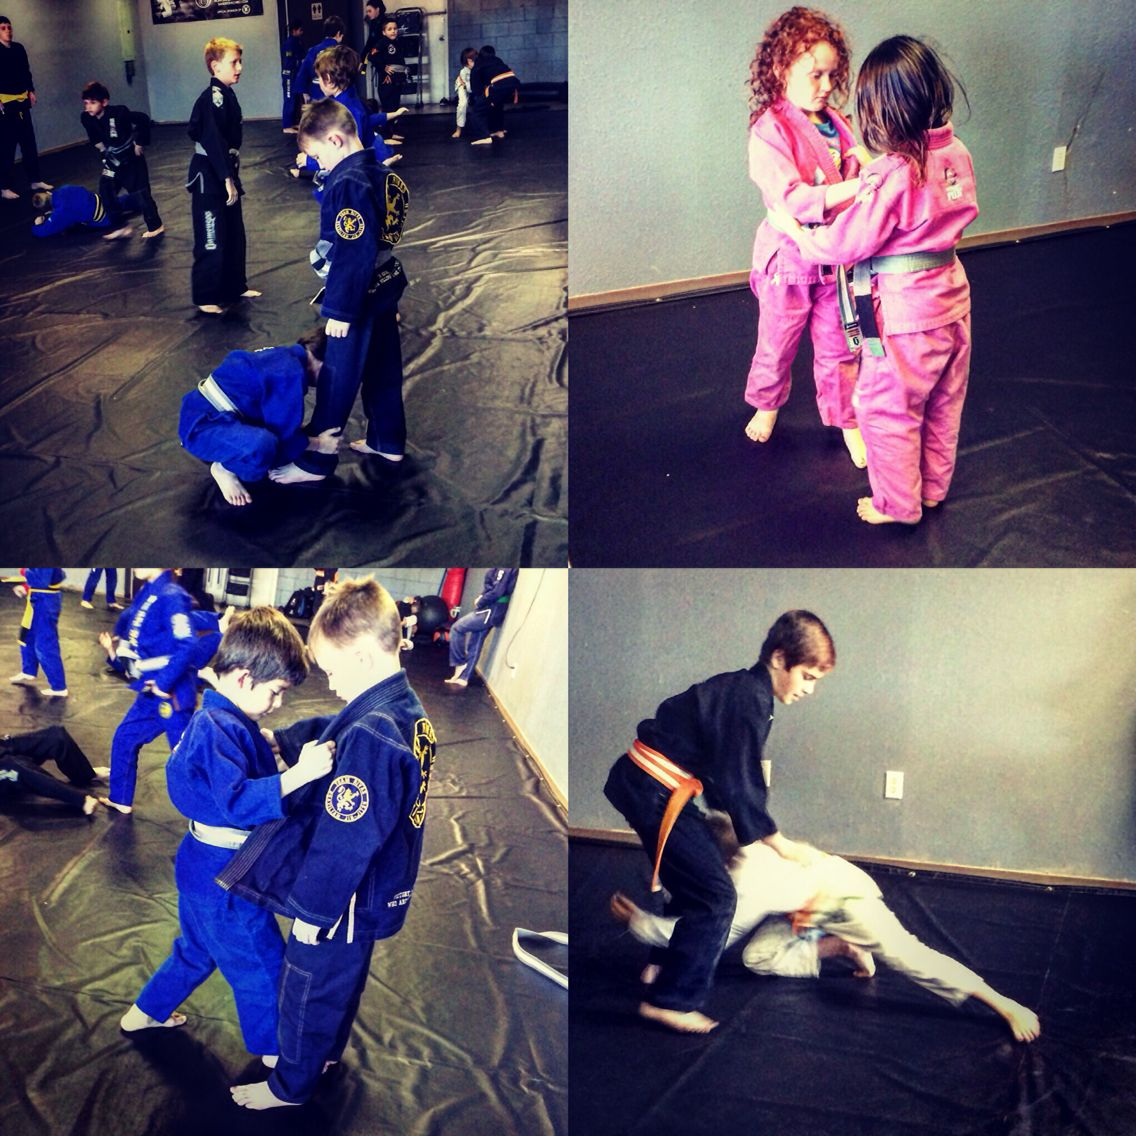 First kids class of the year! Everyone was full energy and focus. Ready for Saturday!!!www.TeamRivas.com Champions Factory    #TeamRivas #LakeConroeMartialArts #ConroeBJJ #ConroeBrazilianJiuJitsu #MontgomeryMartialArts #LakeConroeBrazilianJiuJitsu #MontgomeryBrazilianJiuJitsu #KidsMartialArts #LakeConroeMMA #MontgomeryMMA #moyabrand #RibeiroJJ #6blades #ConroeMartialArts #KidsMartialArts